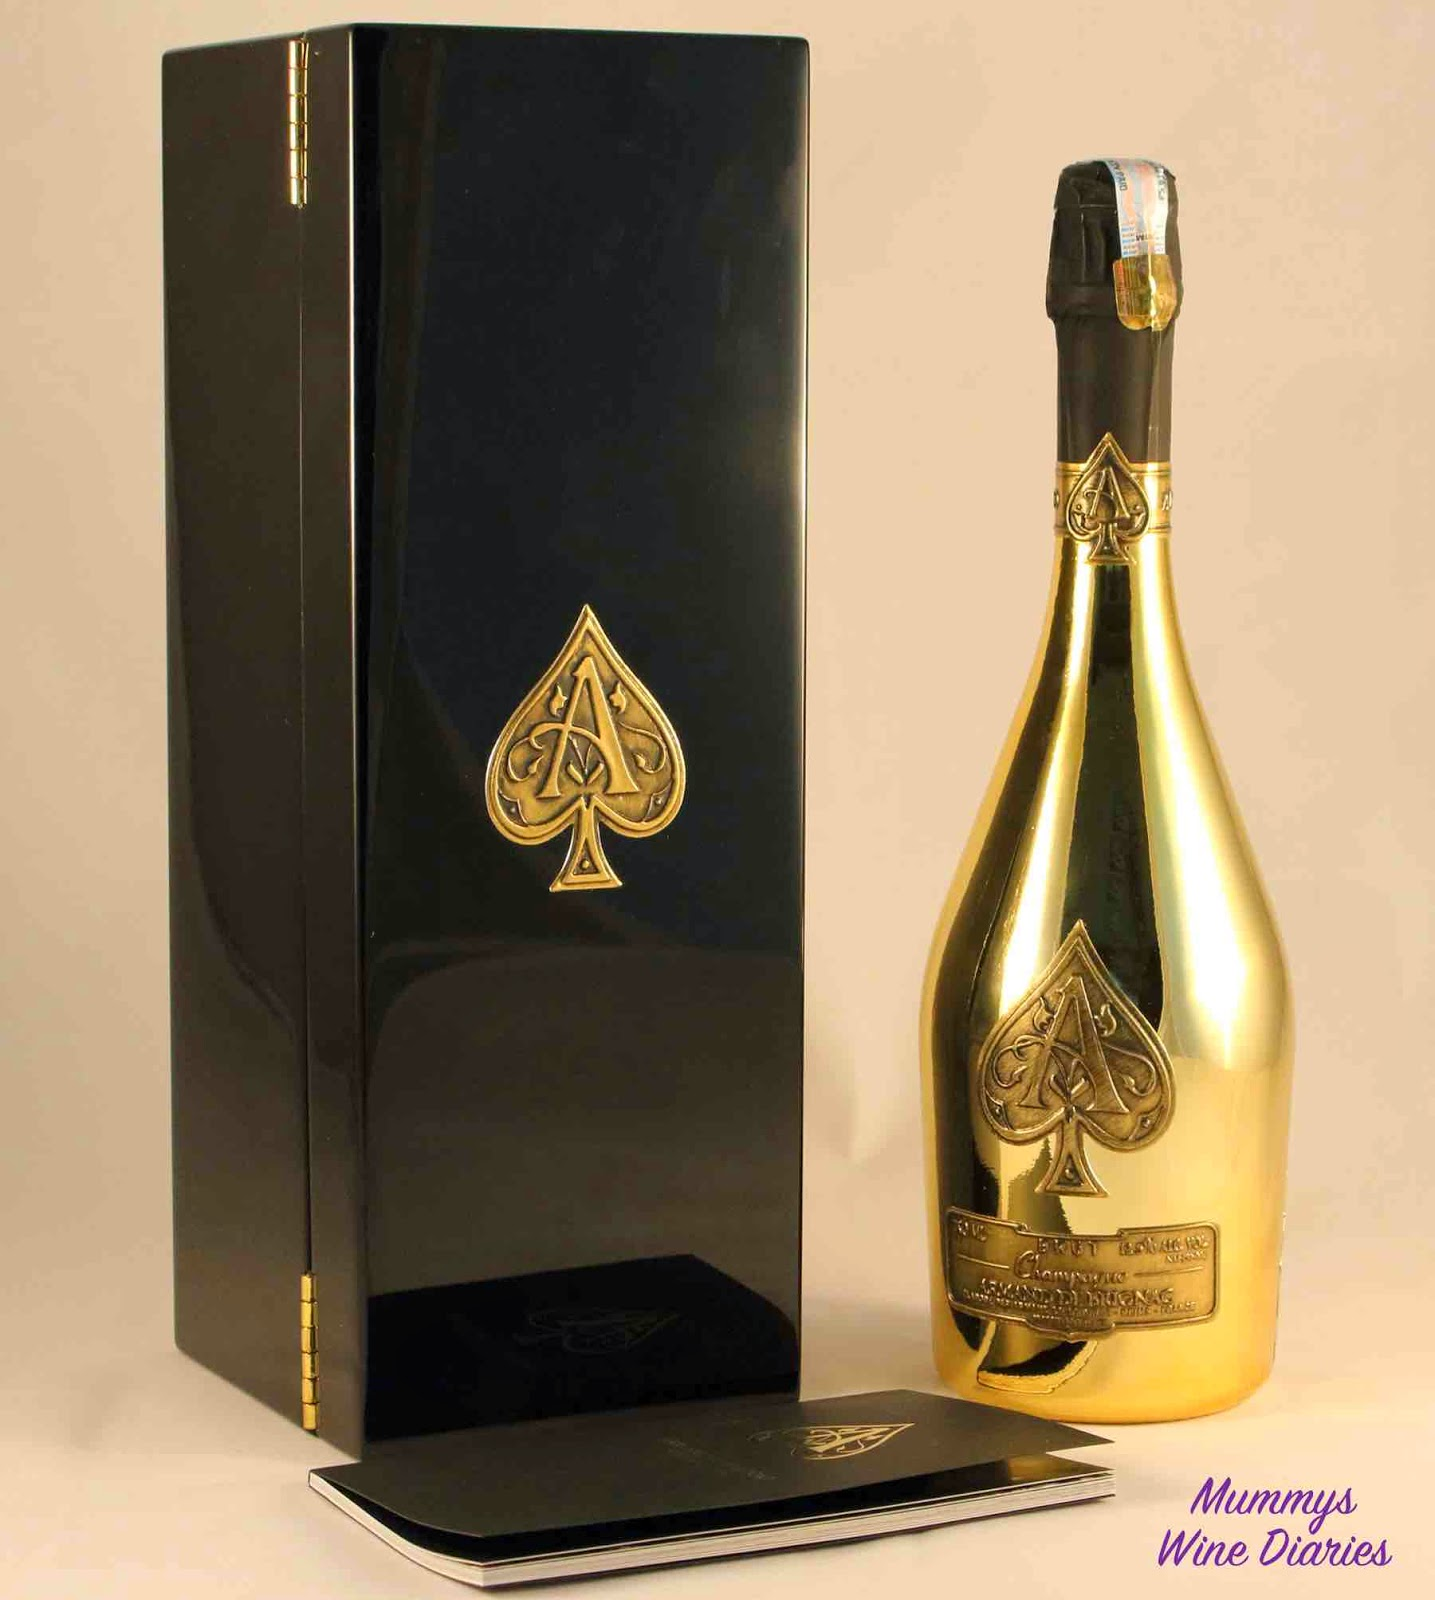 champagne-bottle-box-booklet-gold-ace-of-spades-brut